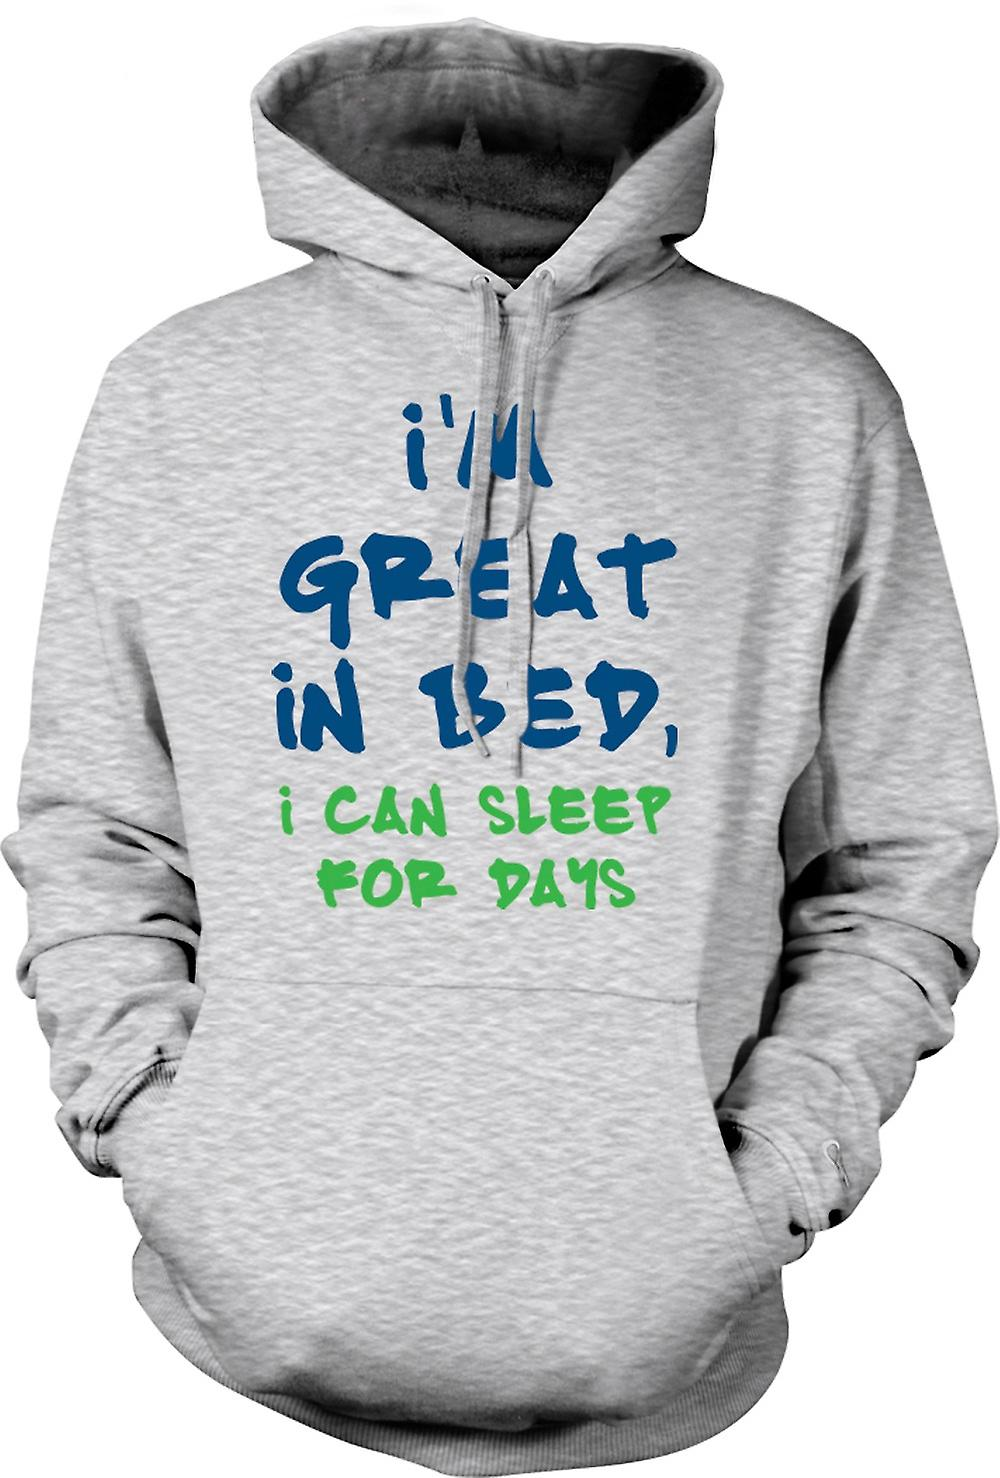 Mens Hoodie - Im Great In Bed, I Can Sleep For Days - Funny